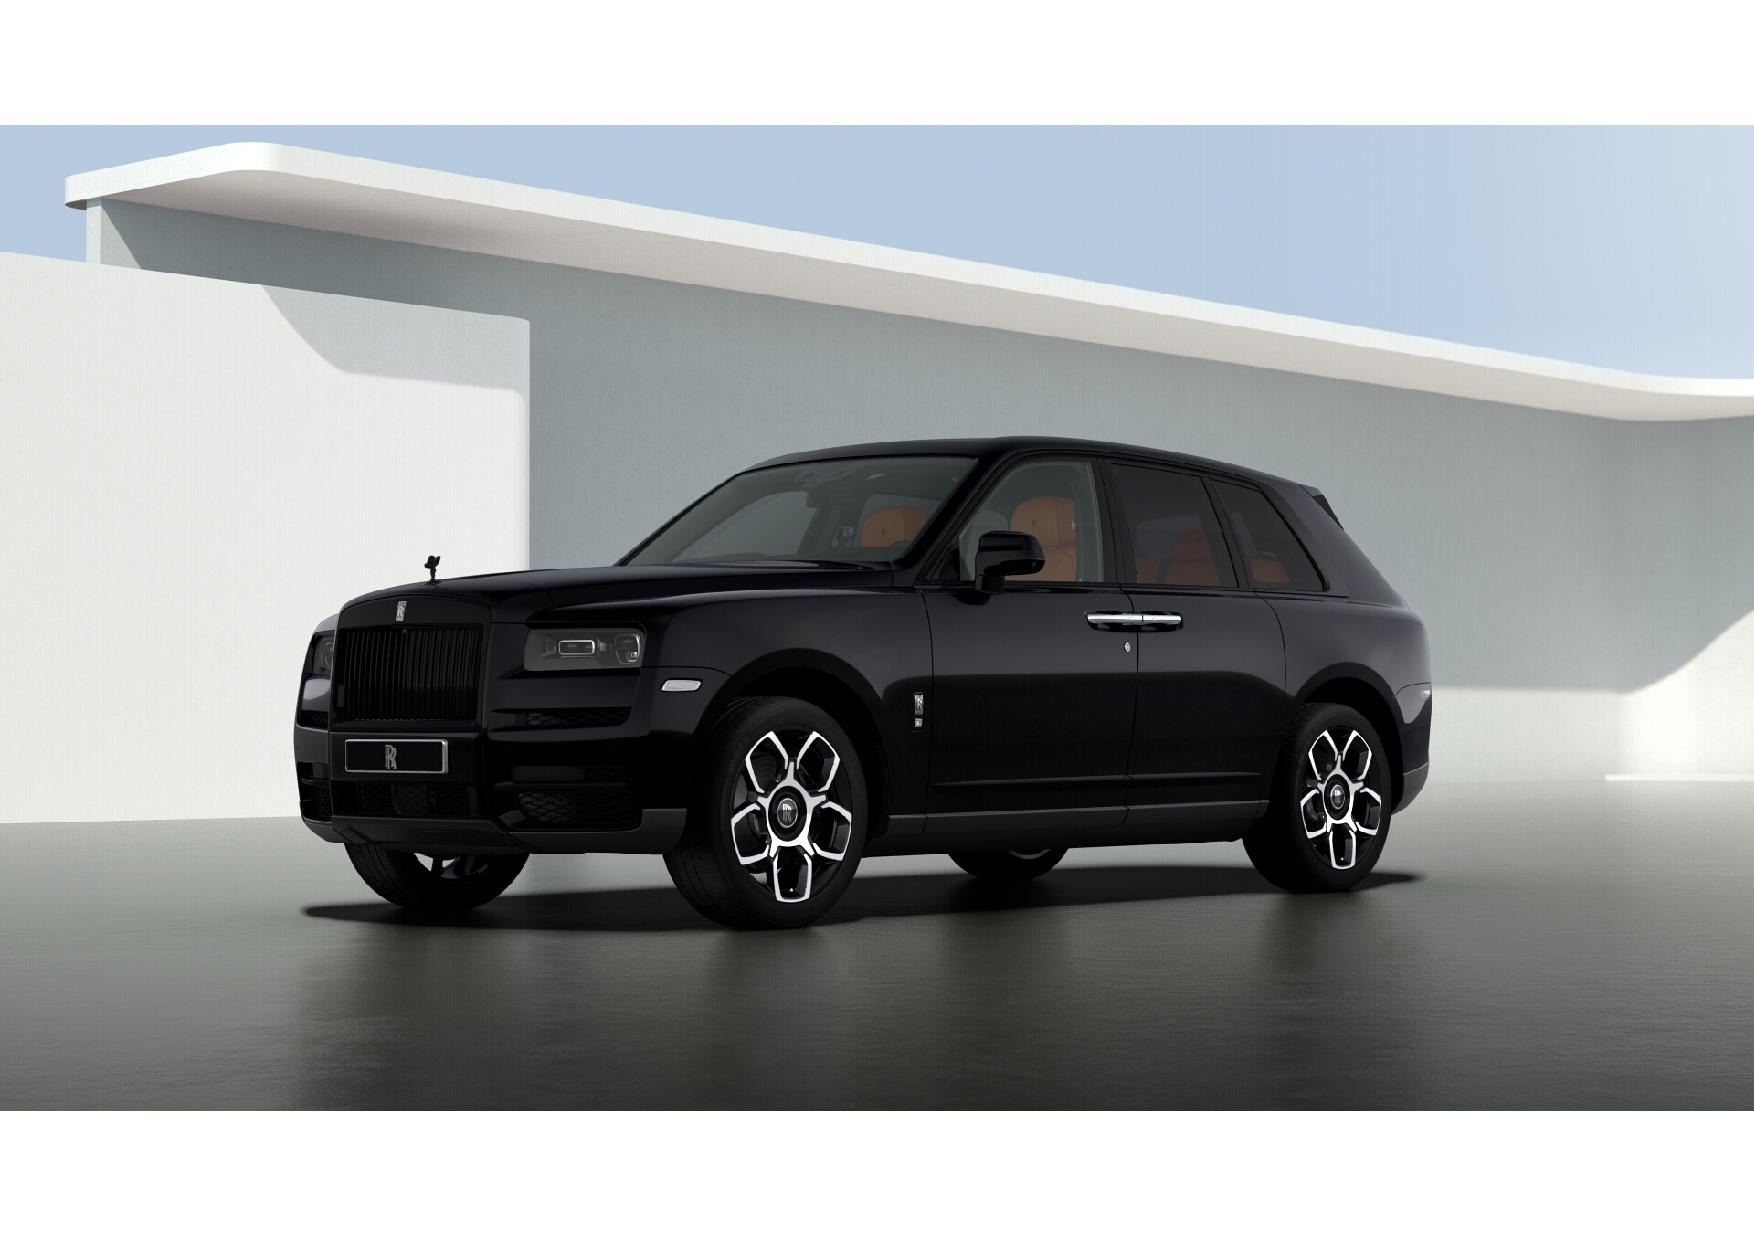 New 2021 Rolls-Royce Cullinan Black Badge for sale $433,225 at Bentley Greenwich in Greenwich CT 06830 1